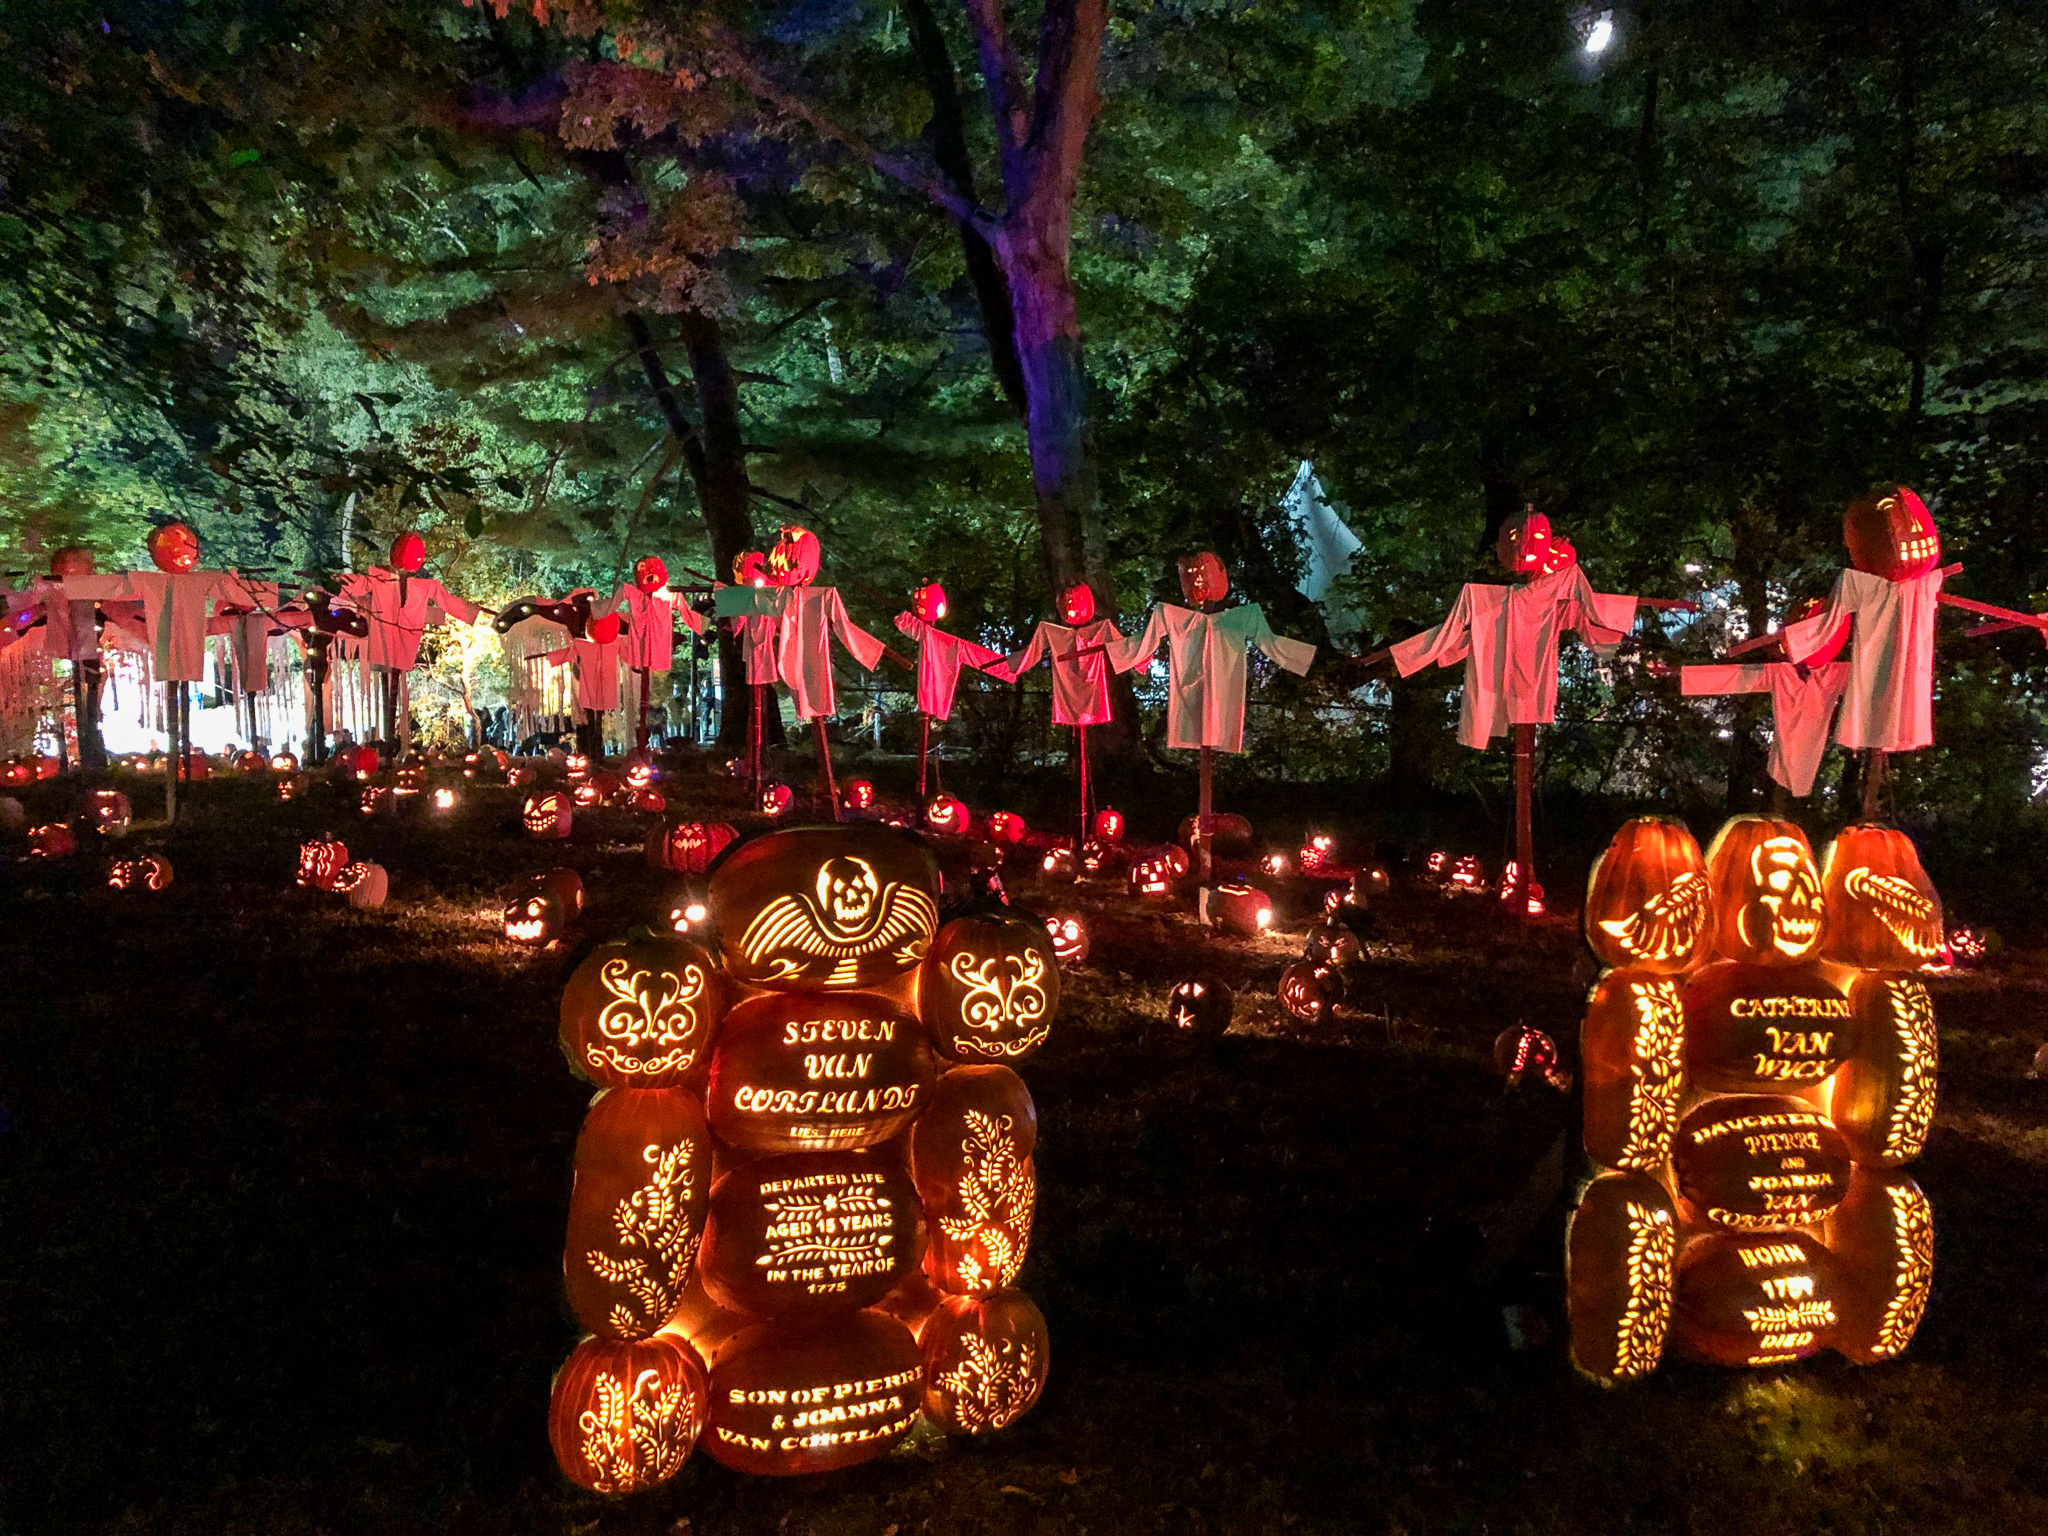 things to do in sleepy hollow include many pumpkins